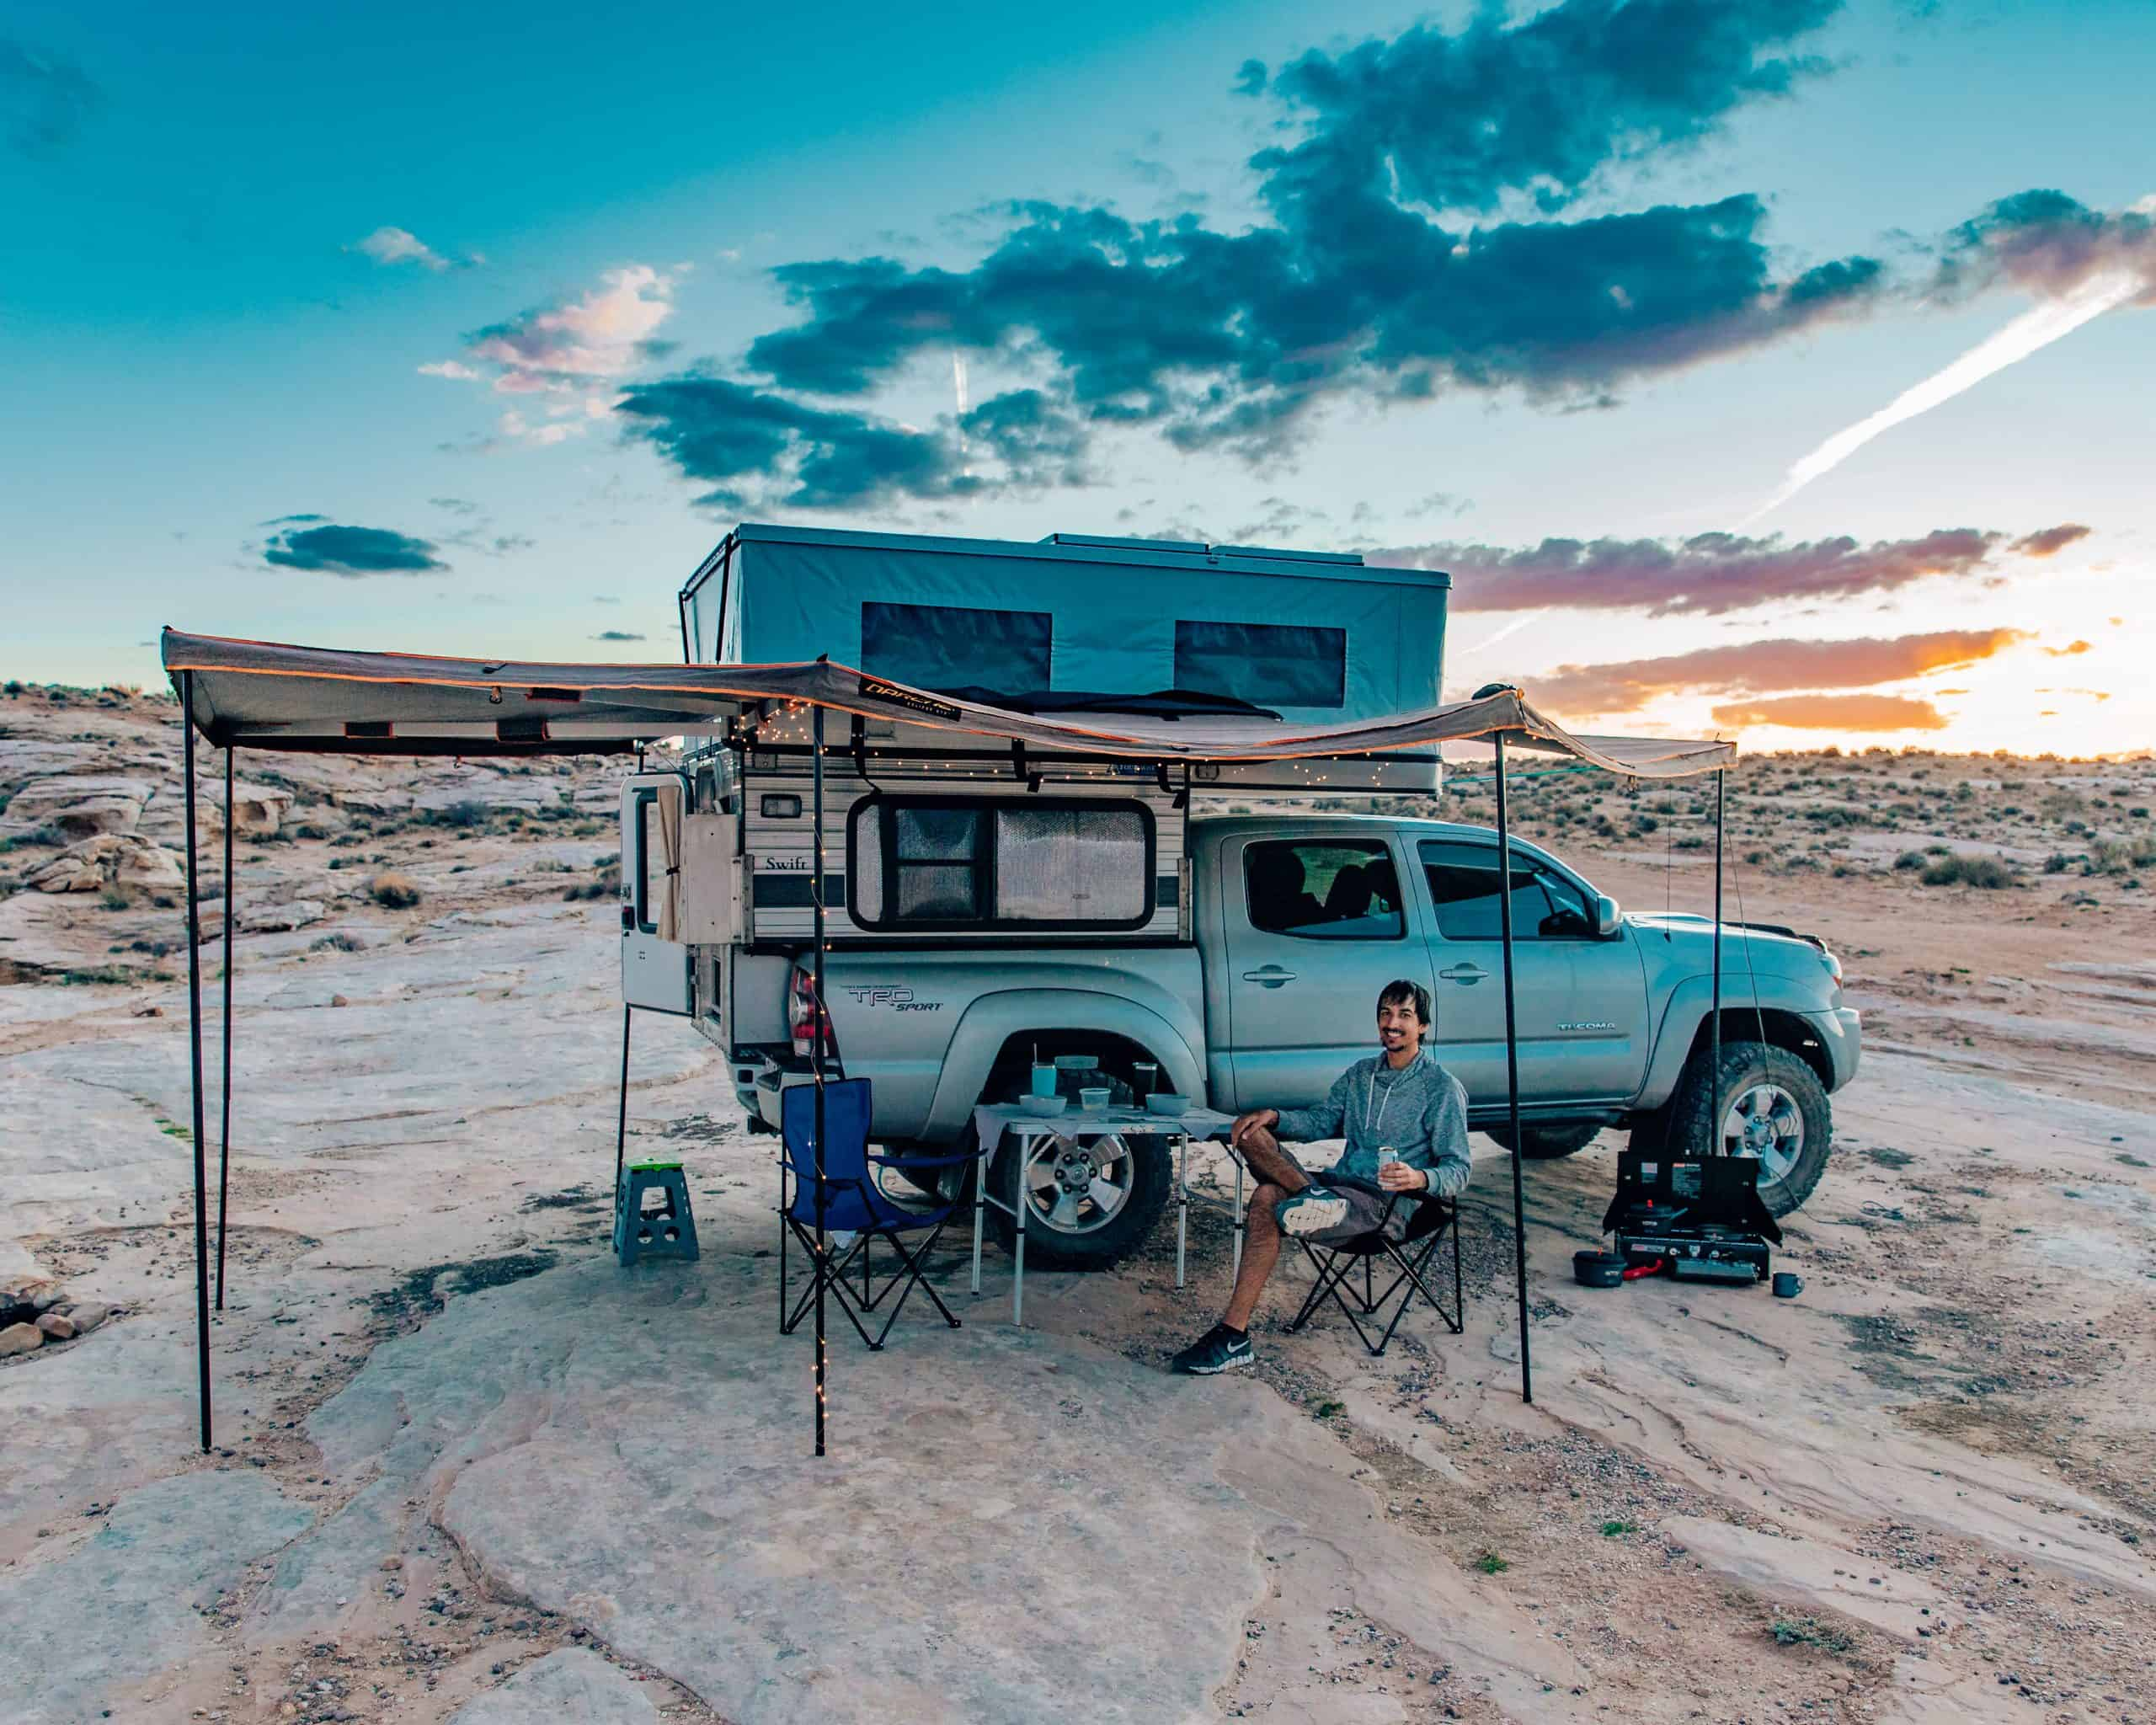 Camp at Alstrom Point, Utah - The Next Trip